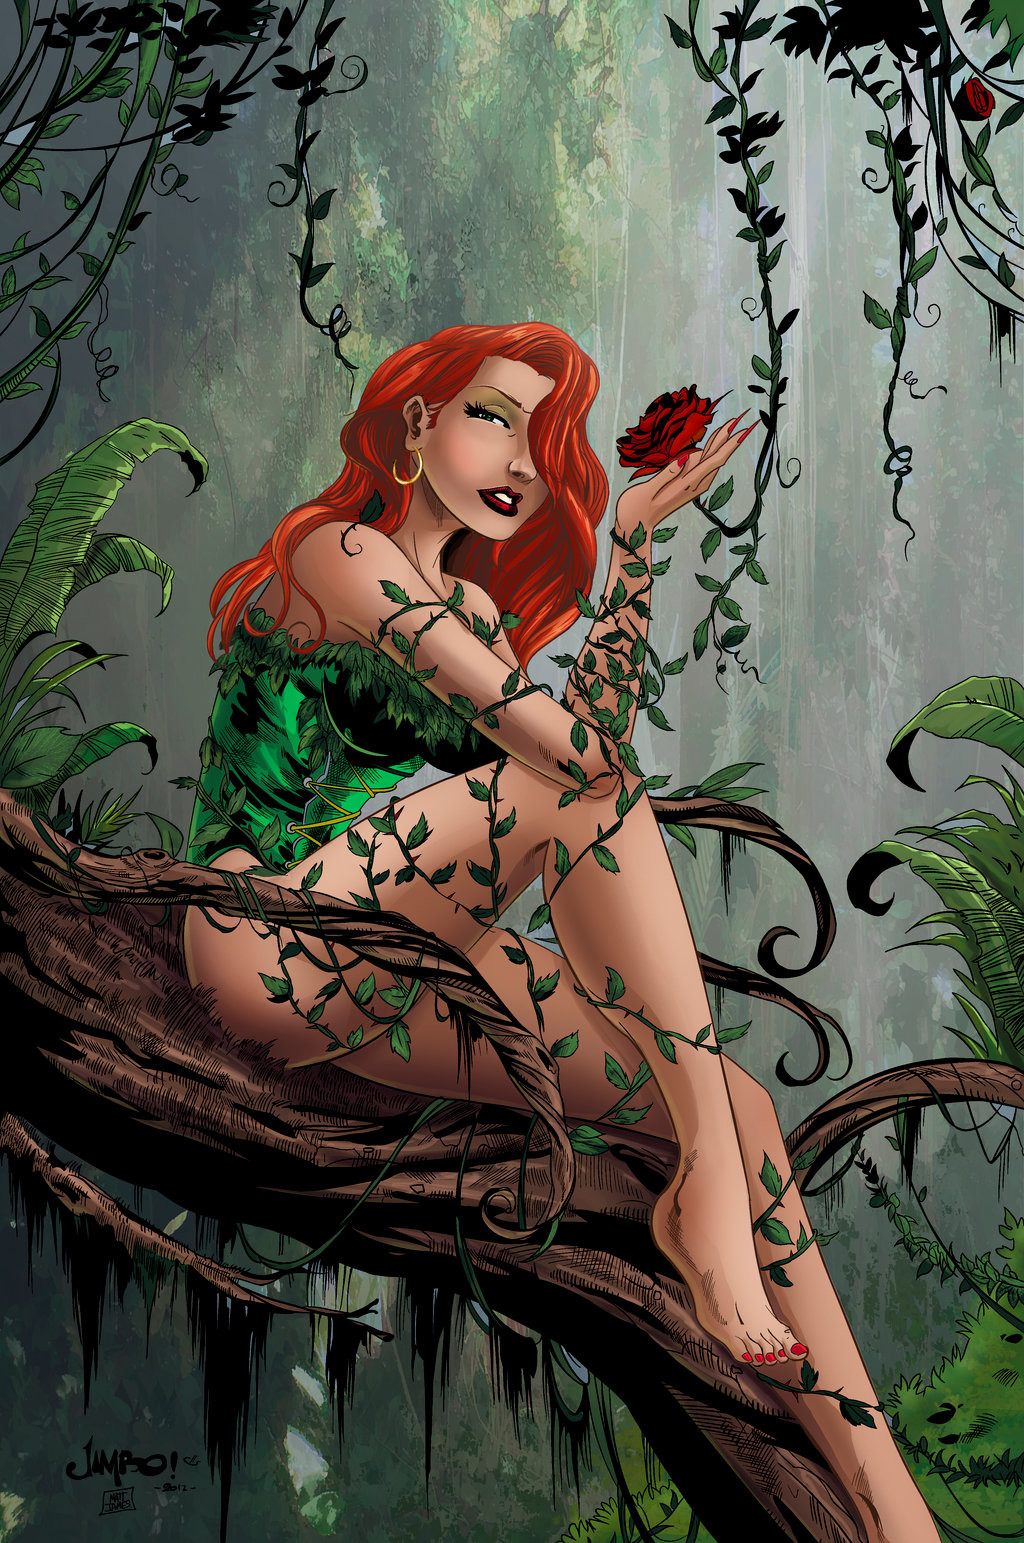 Matt james poison ivy by snakebitartstudio db140qo